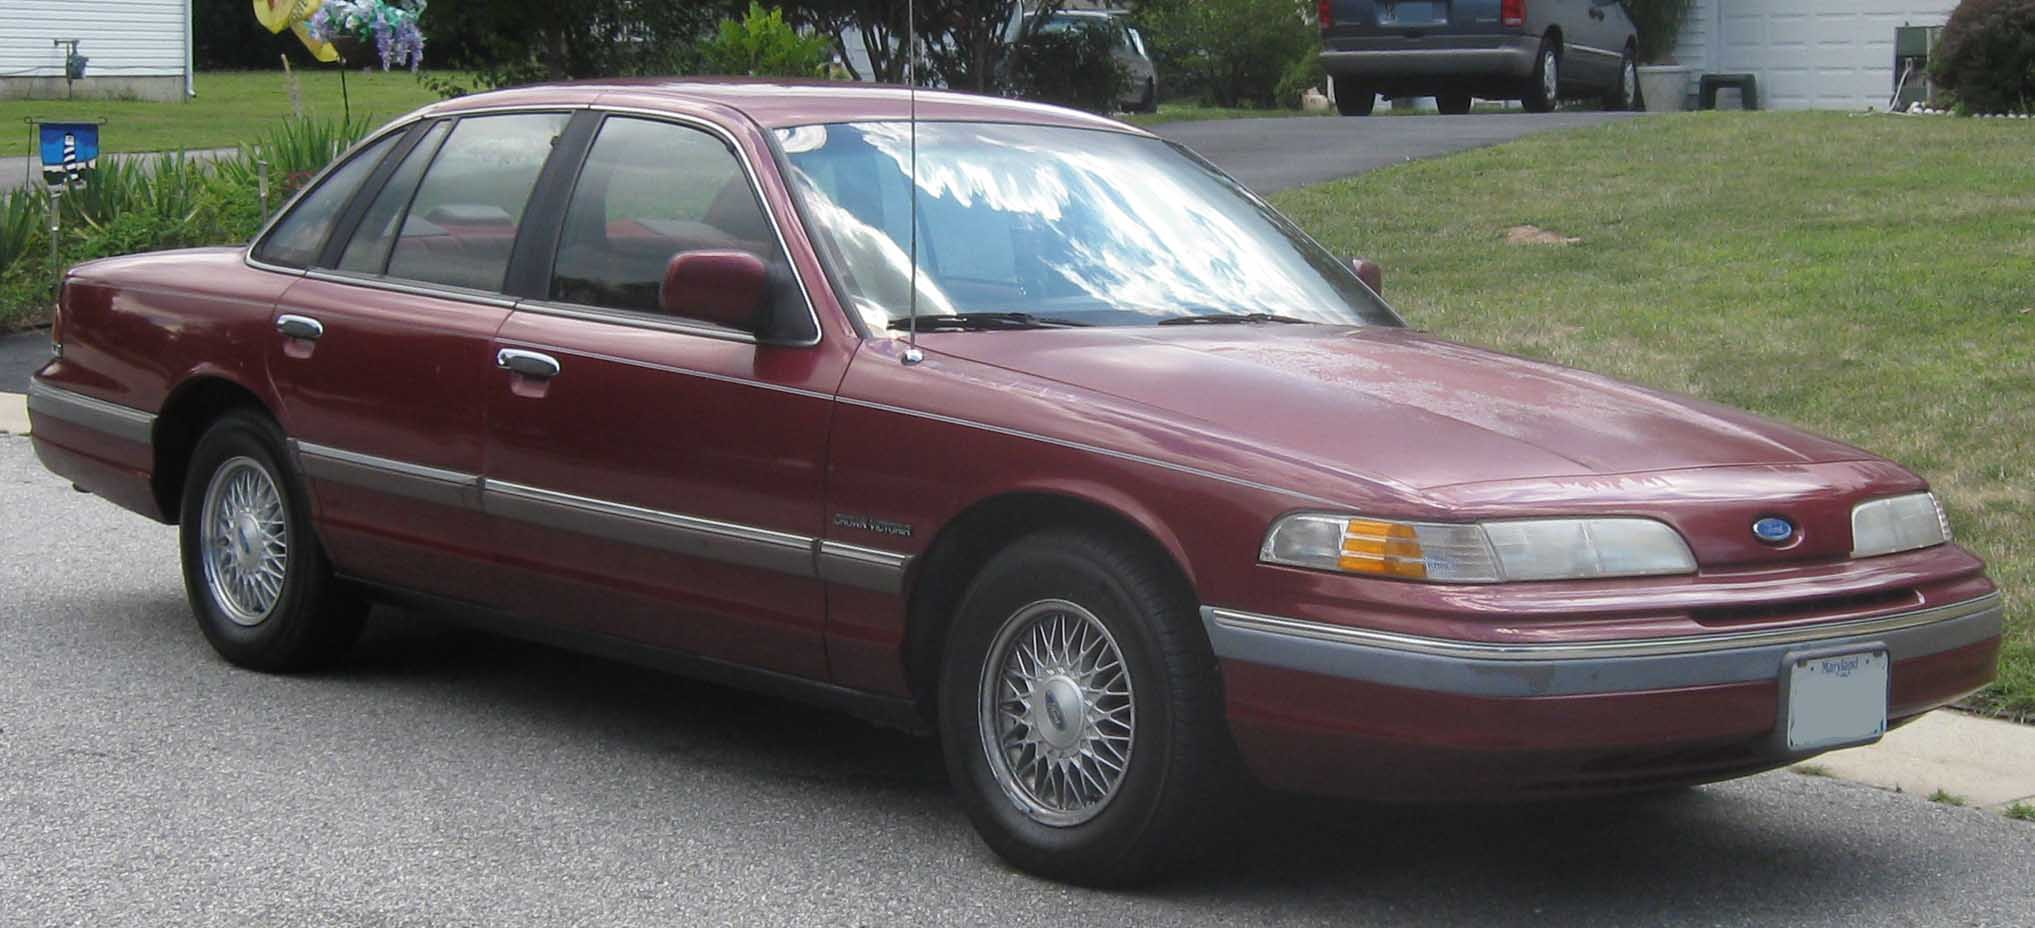 File1992 ford crown victoria lx jpg